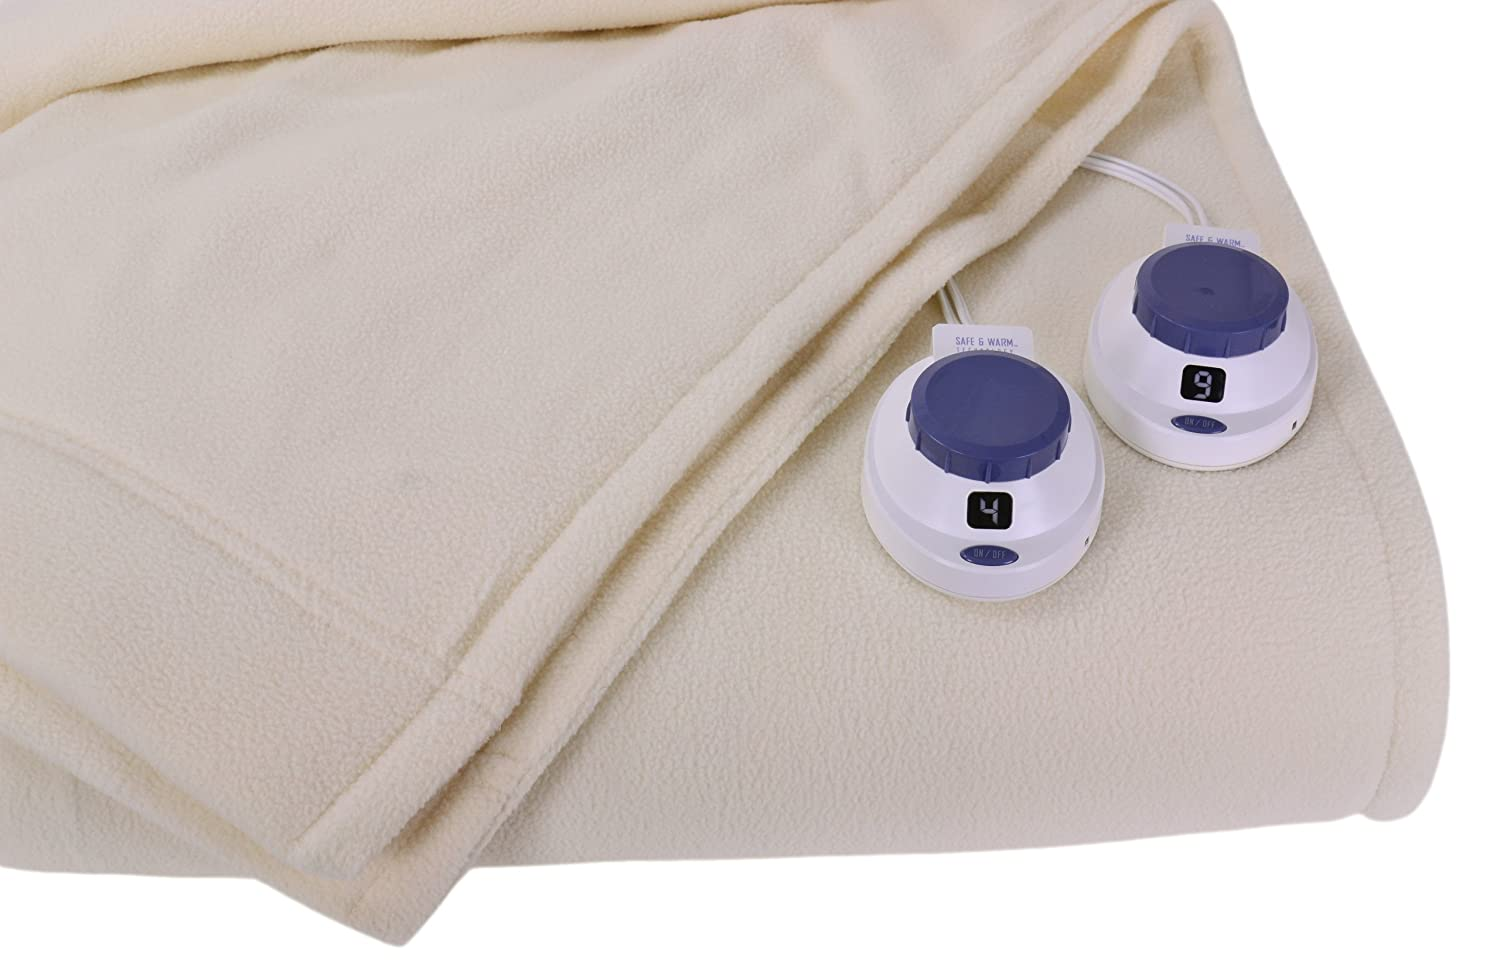 Soft Heat Luxury Micro-Fleece Low-Voltage Electric Heated King Size Blanket